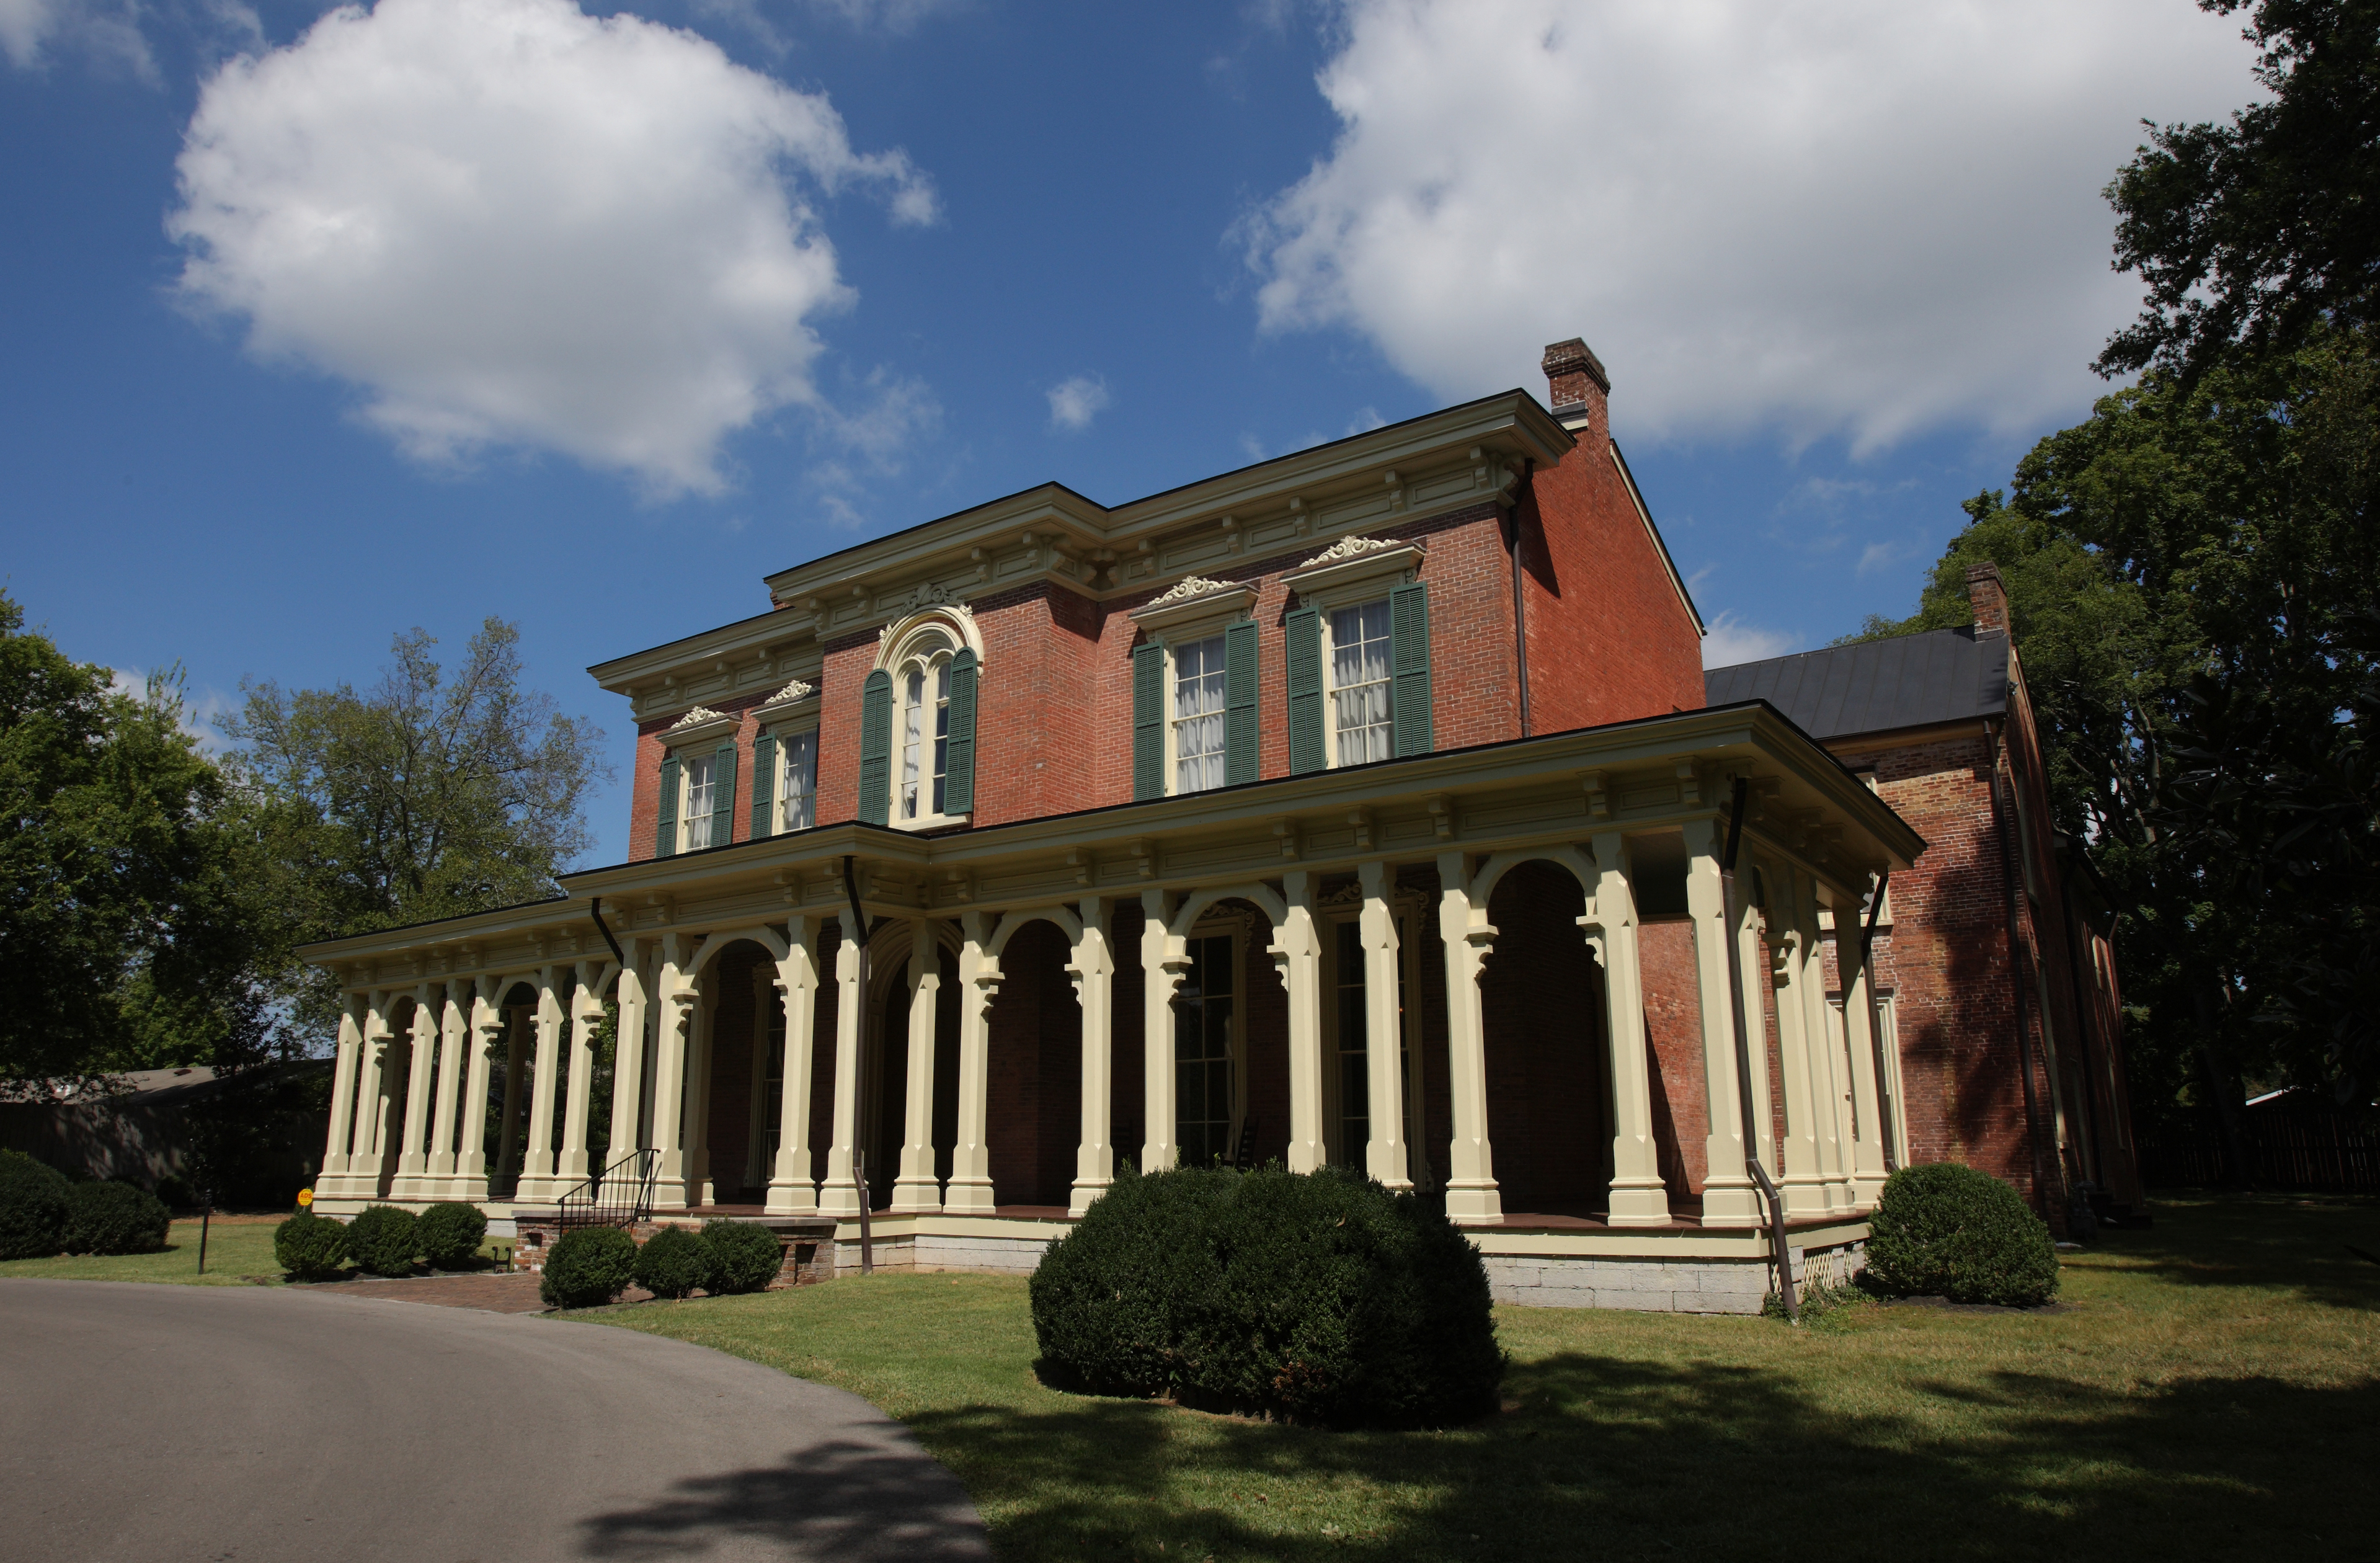 The Oaklands Mansion in Murfreesboro, Tennessee